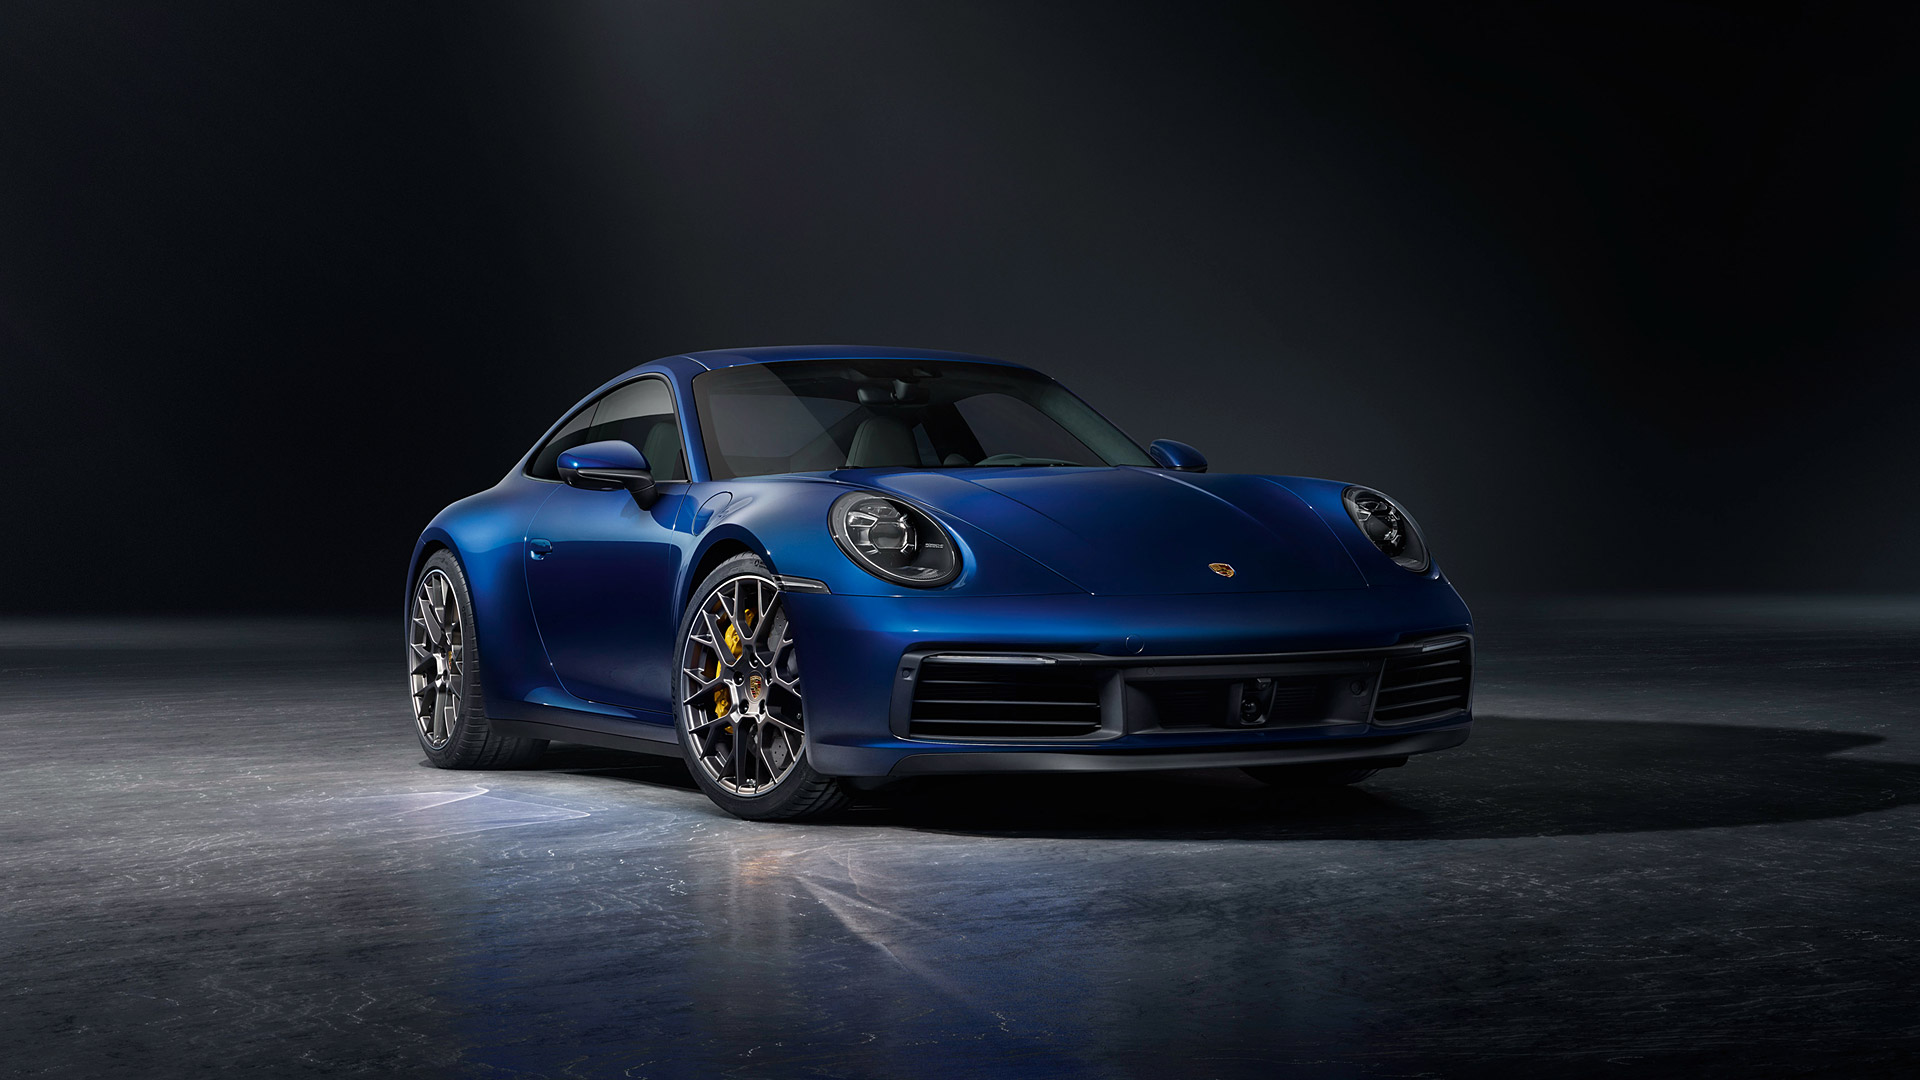 Free Download 2019 Porsche 911 Carrera 4s Wallpapers Hd Images Wsupercars 1920x1080 For Your Desktop Mobile Tablet Explore 31 Porsche Carrera Wallpapers Porsche Carrera Wallpapers Porsche Carrera Gt Wallpapers Porsche 911 Carrera 2020